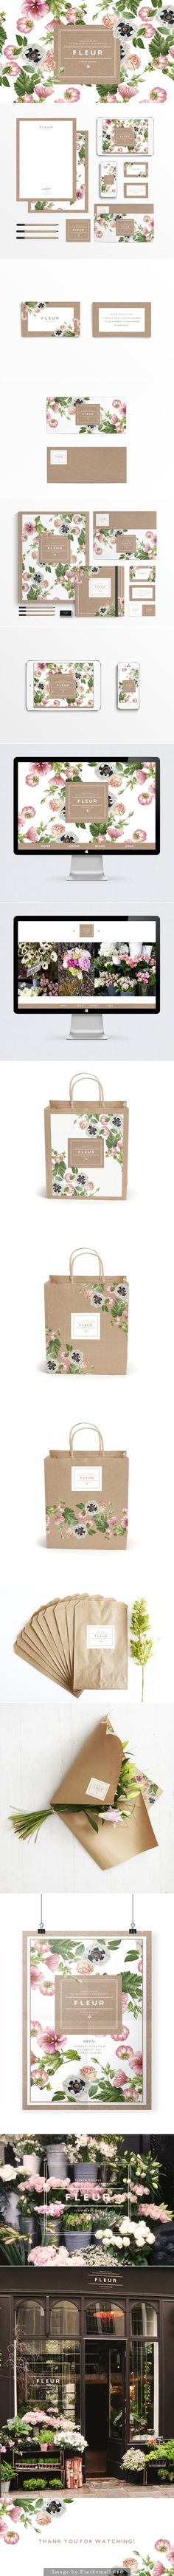 Fleur #identity #packaging #branding curated /y Packaging Diva PD